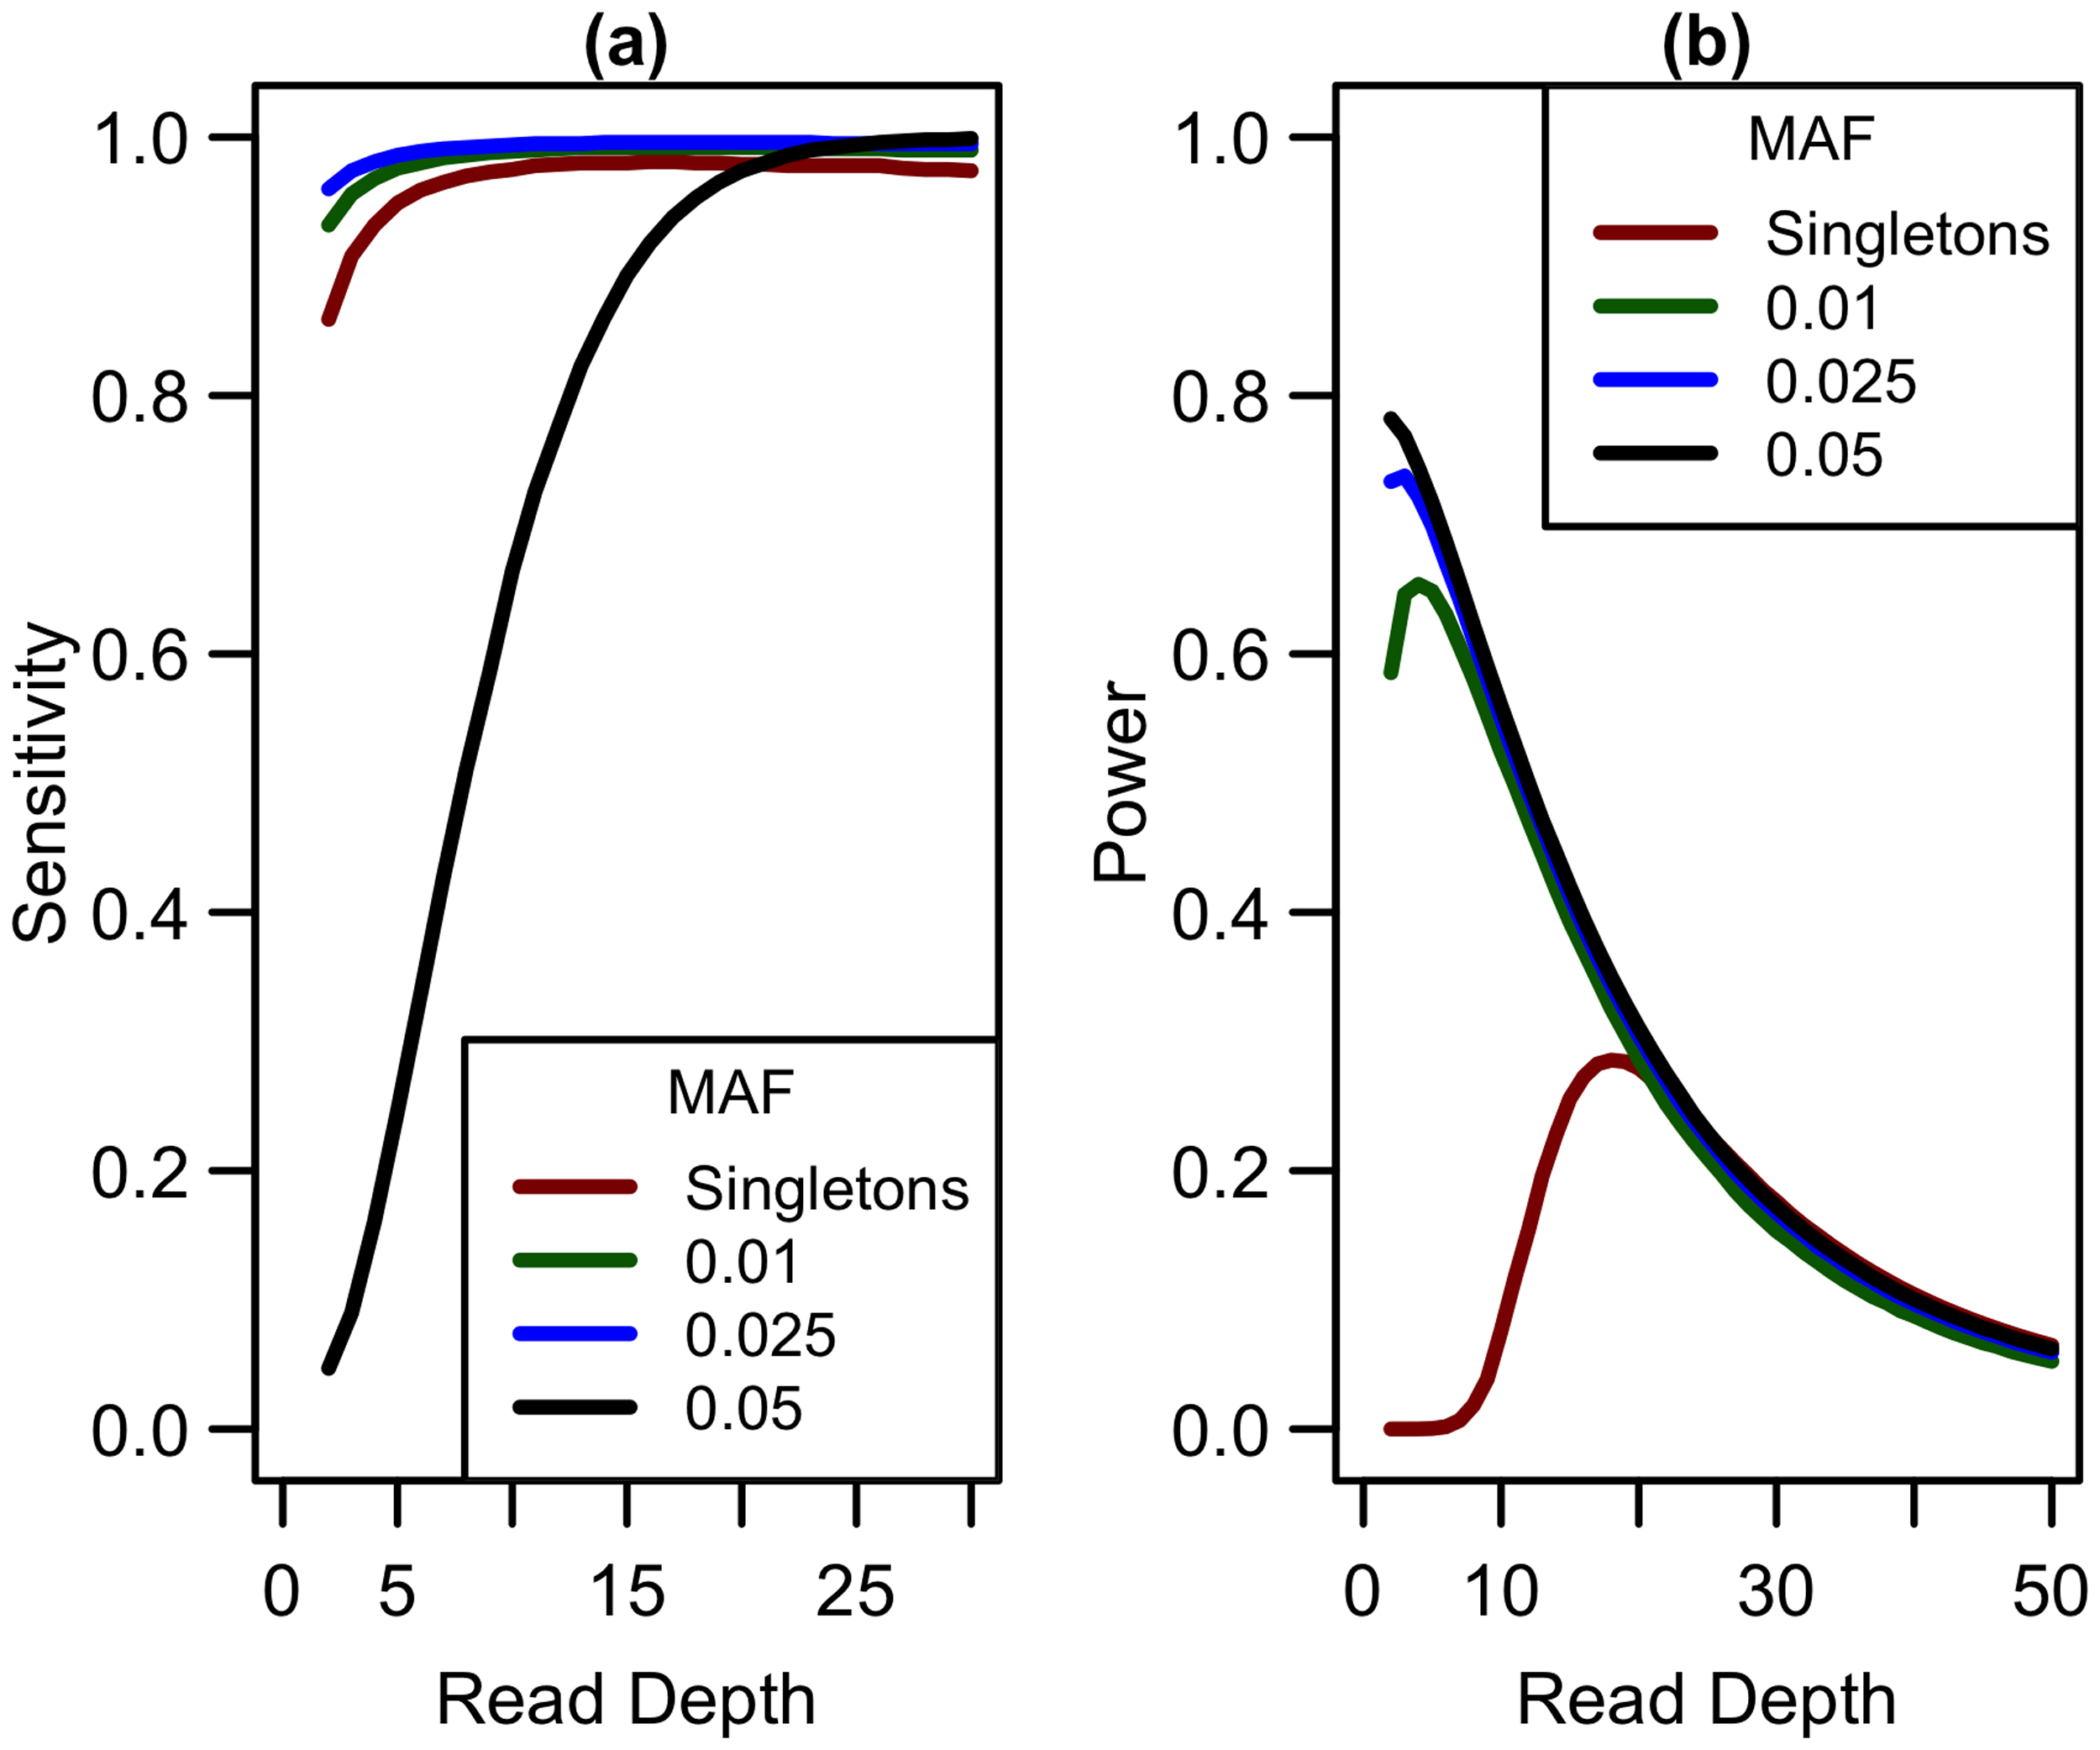 Sensitivity to detect variants and association study power by read depth at different MAF for a fixed sequencing capacity of 100,000x.